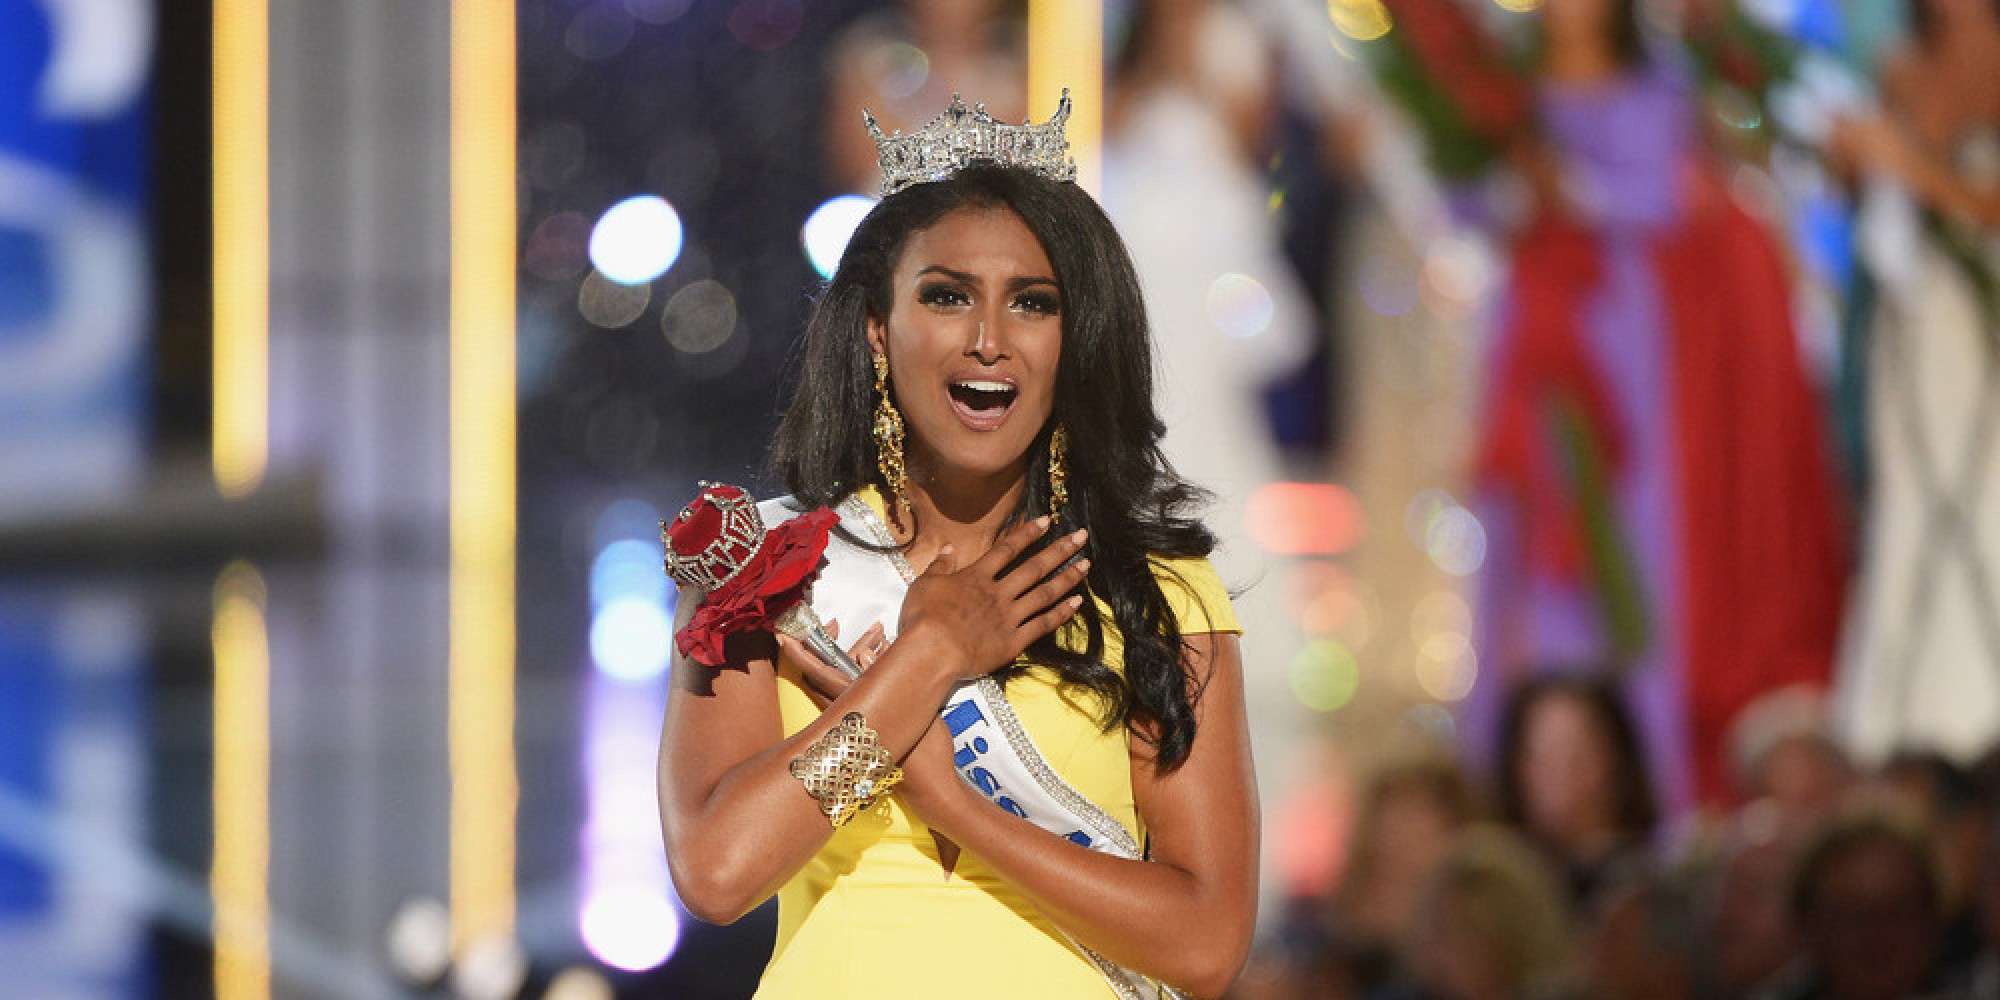 are beauty pageants good best images about pageants miss america  beauty pageants and high school queens is it psychologically good beauty pageants and high school queens